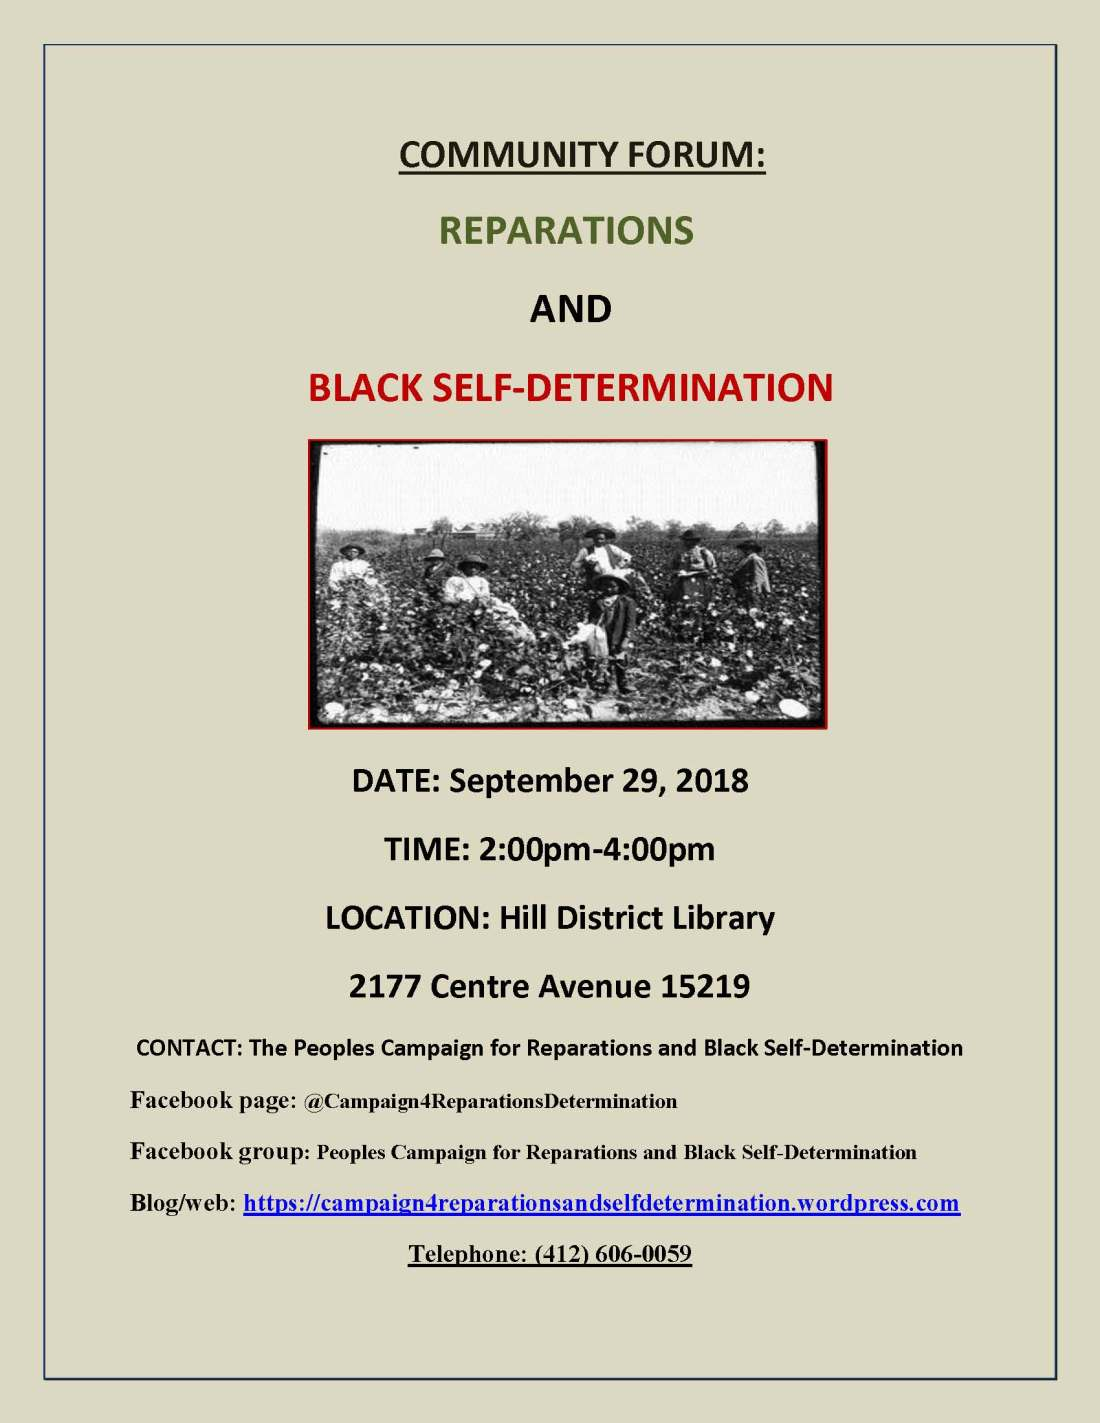 Campaign for Reparations and Self-Determination meeting flyer, 9-29-18